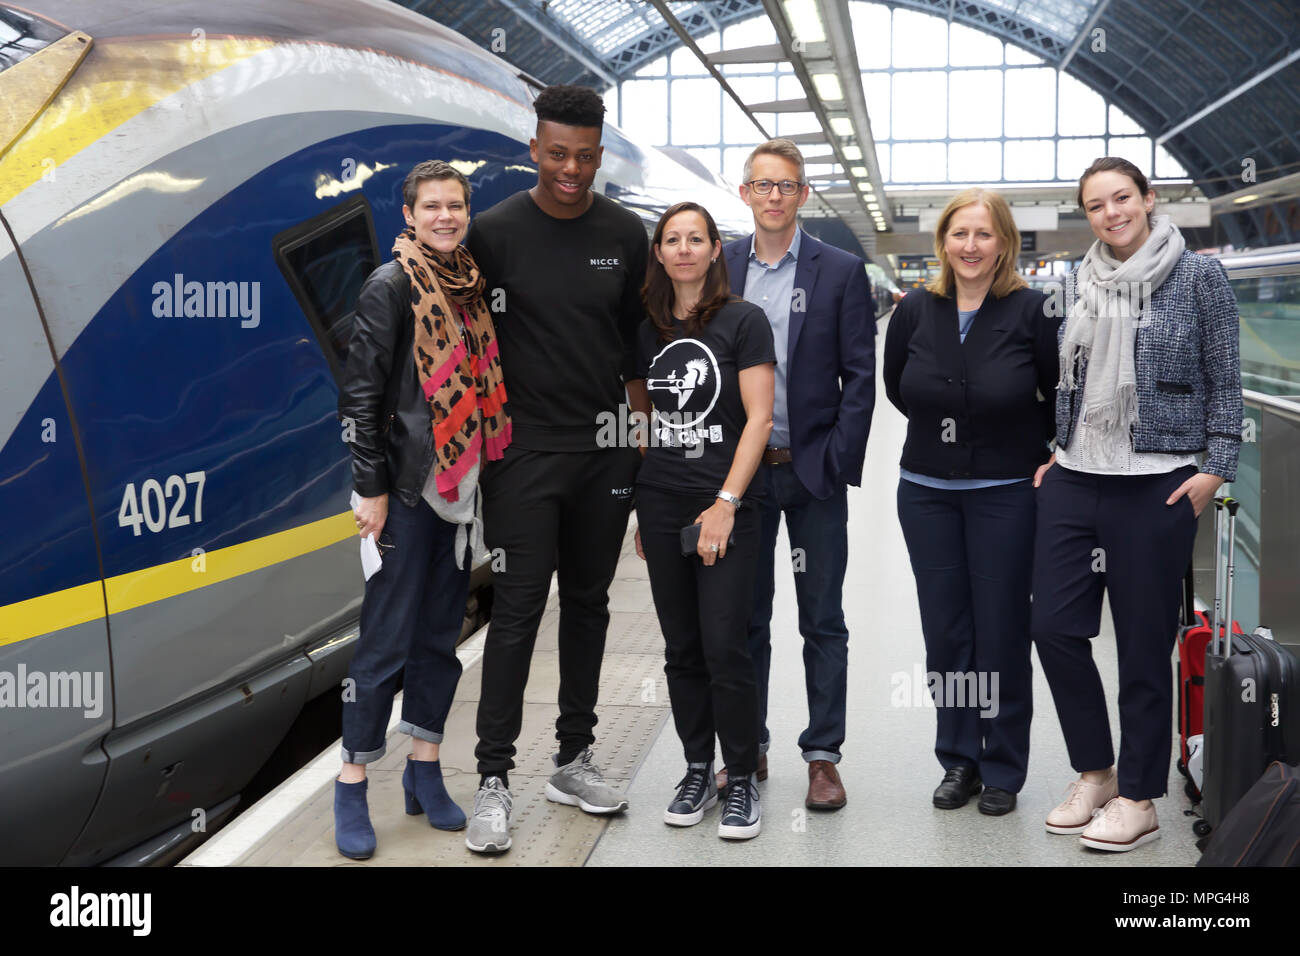 St Pancras, UK. 23rd May 2018. Ky Lewis, Winner of Gigs Eurostar prize poses with the Busking London team before he boards the train to Amsterdam. He set off on a whirlwind busking tour of Amsterdam. He will serenade passengers on the train as they travel under the Channel and complete the day busking in Amsterdam.Credit Keith Larby/Alamy Live News - Stock Image